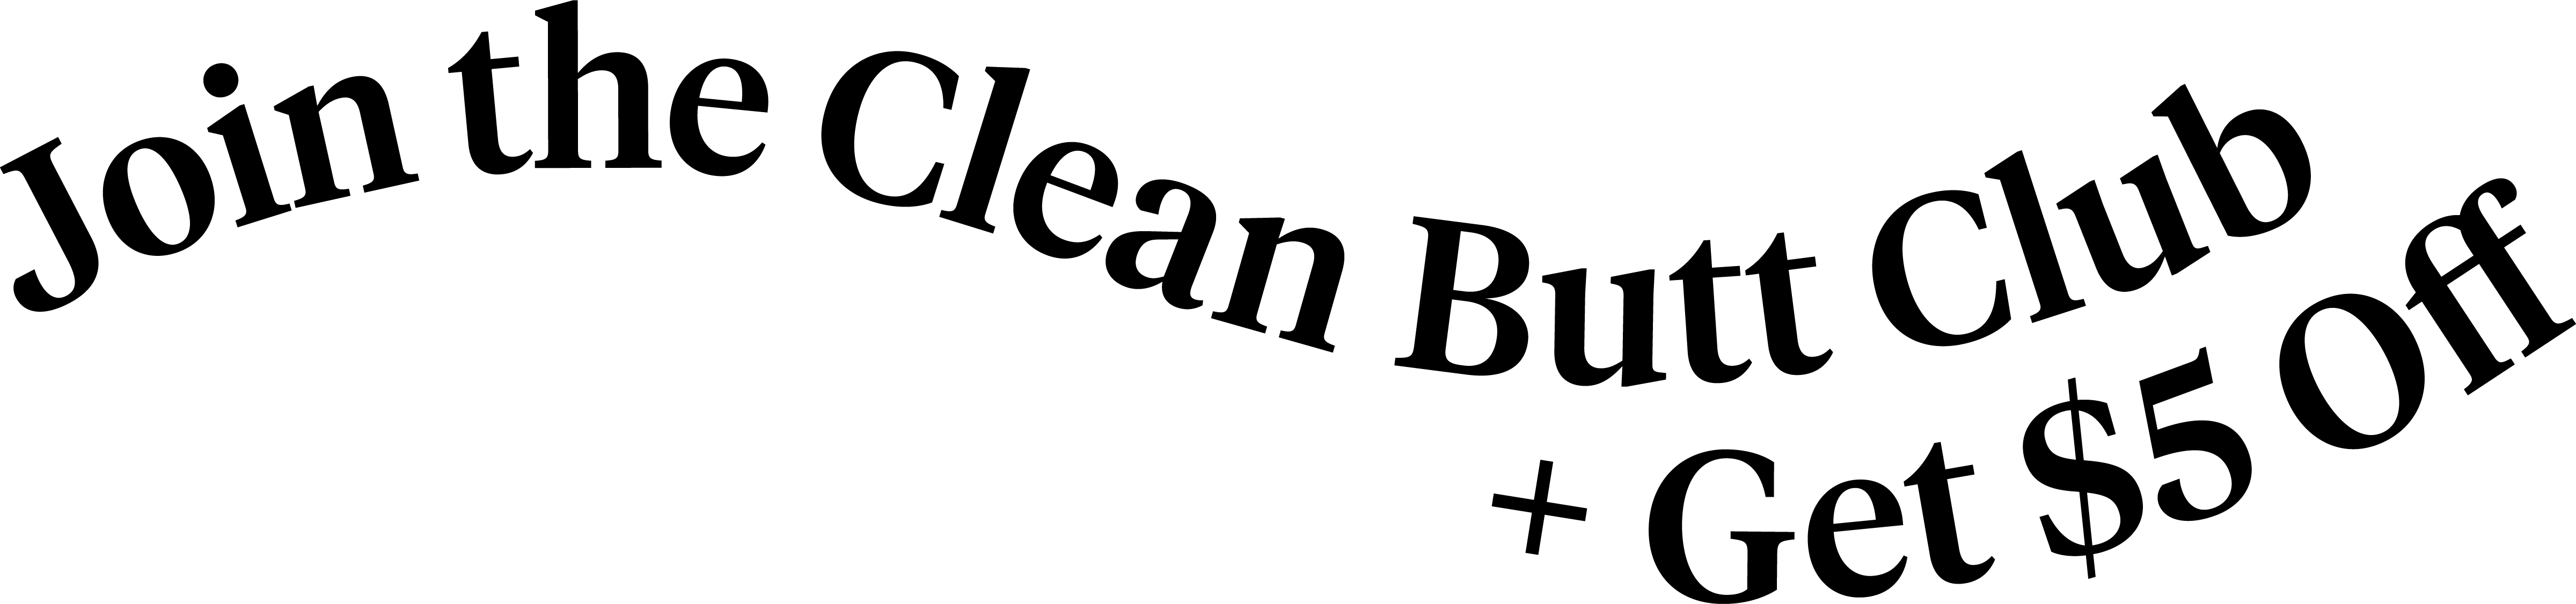 Join the clean butt club and get $5 off, email subscribe.